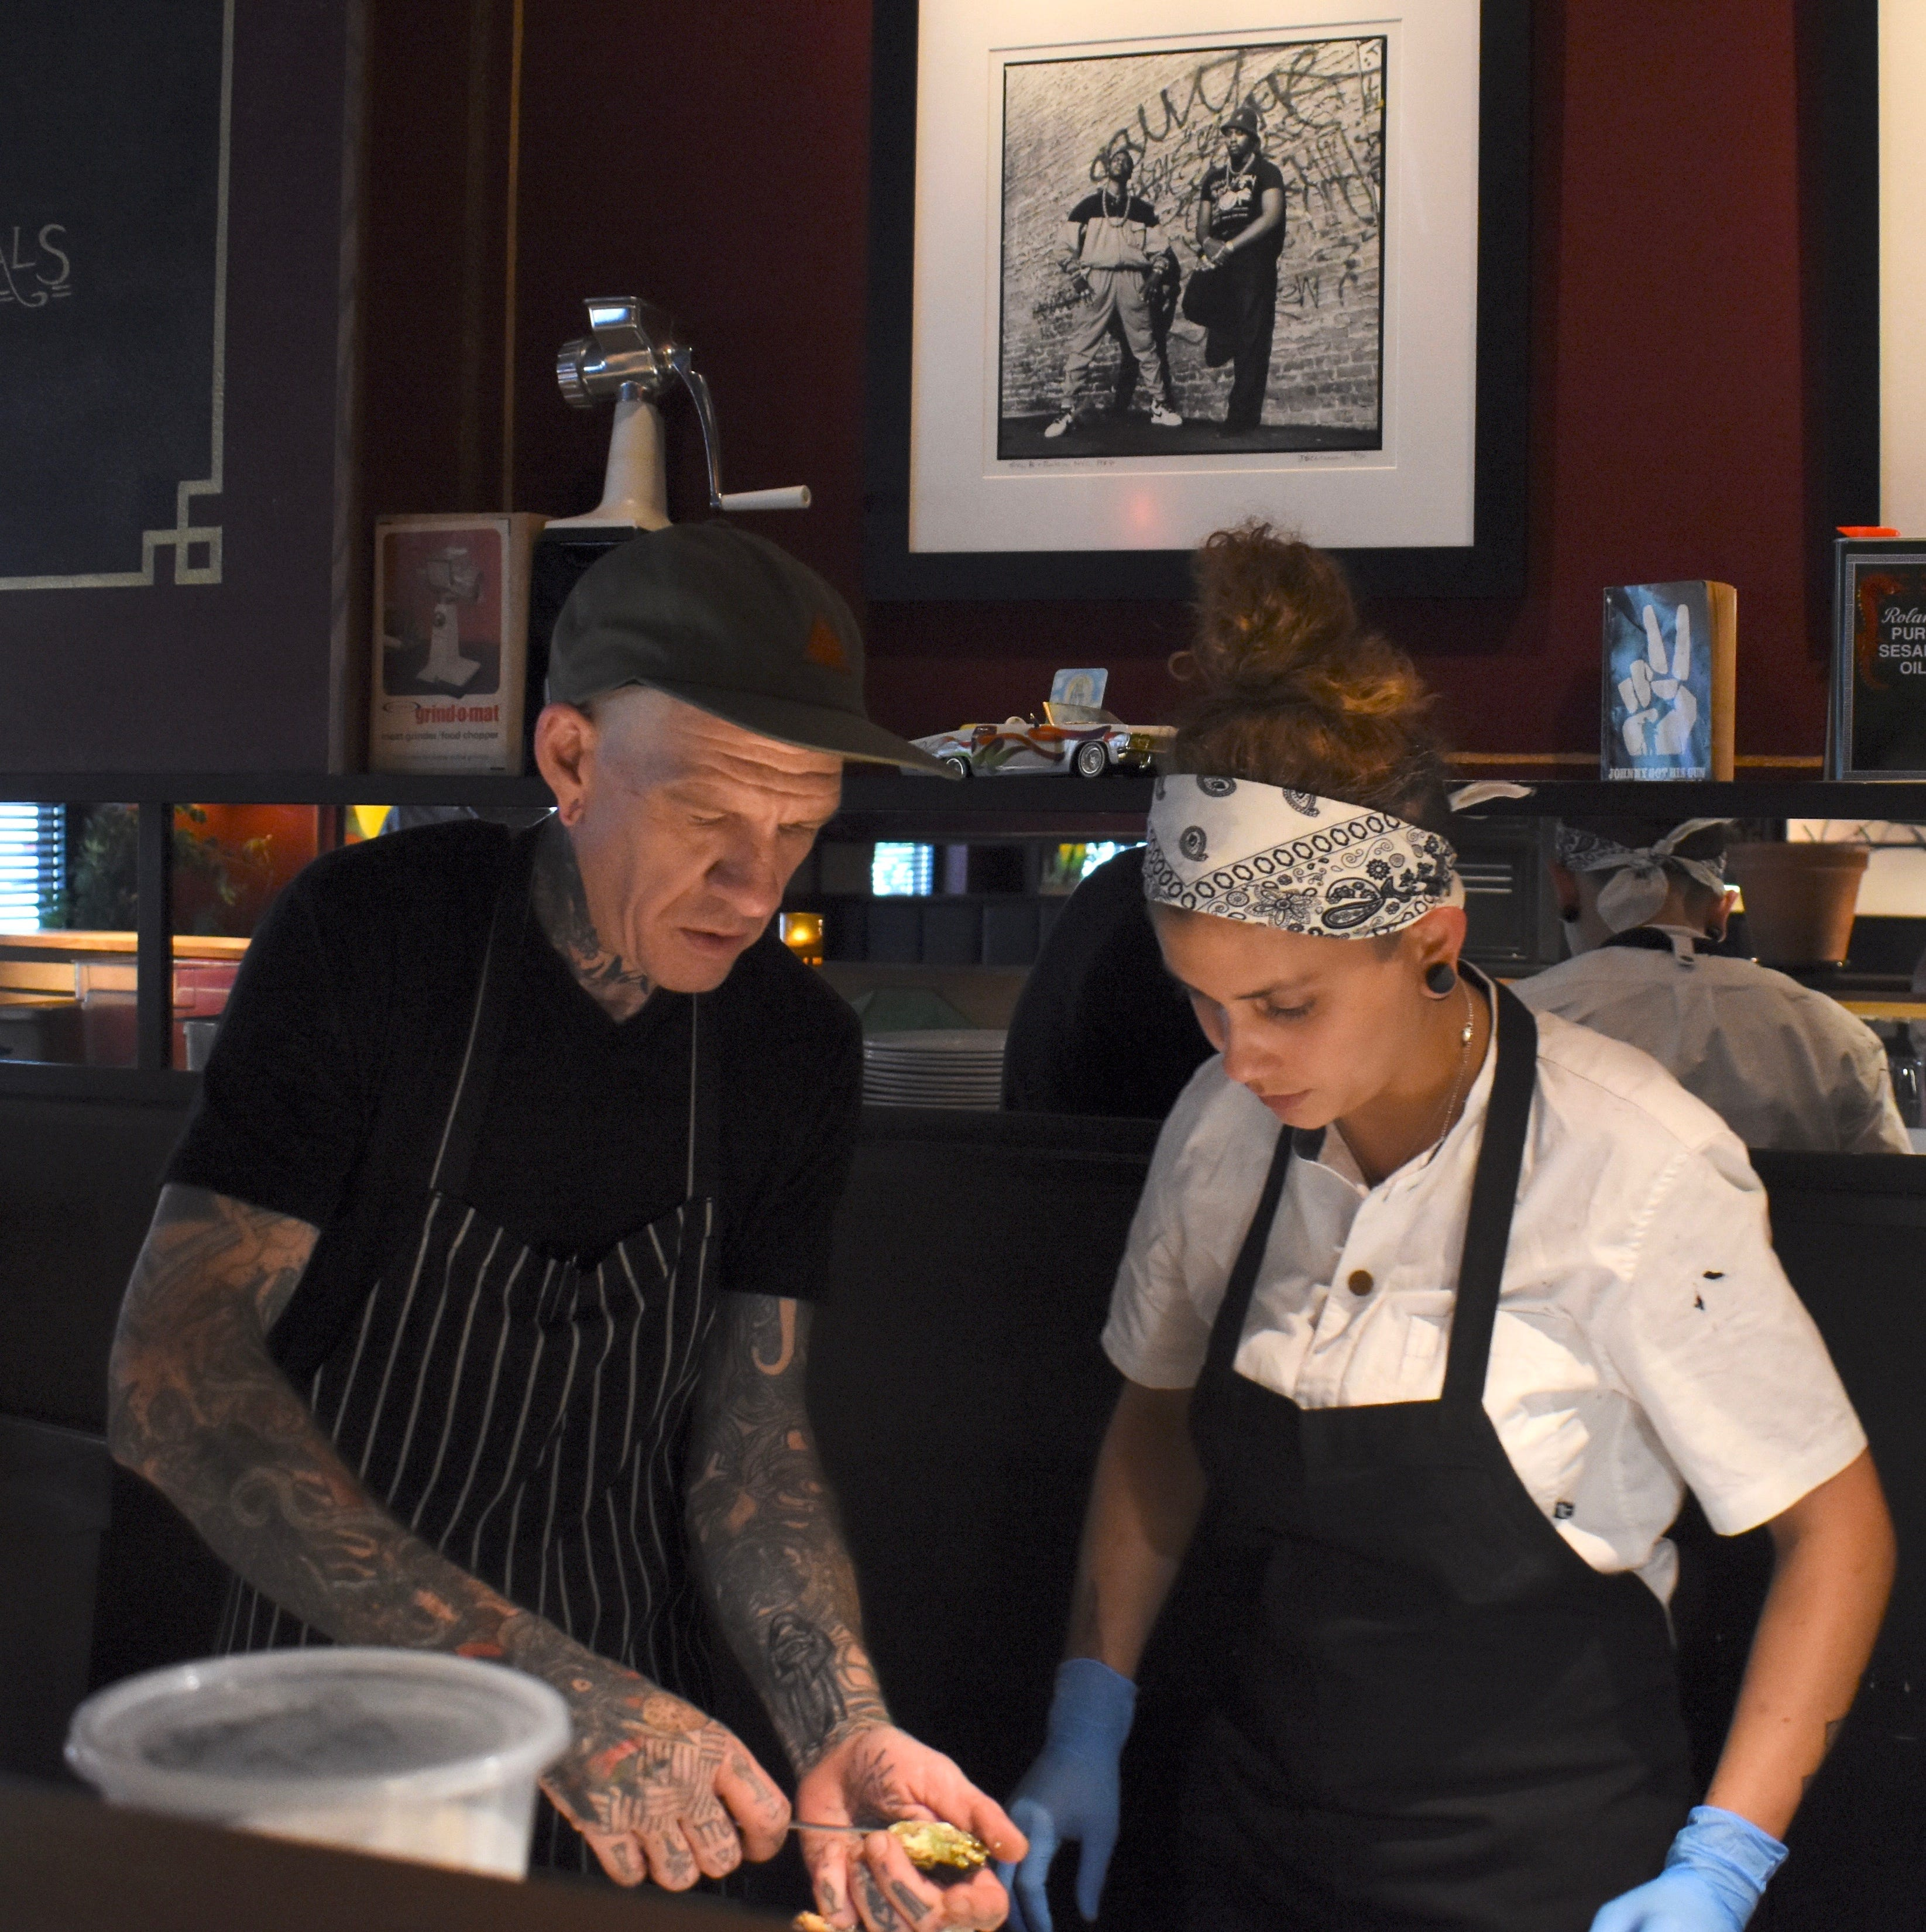 Dining Review: Craft Work excels in the unexpected